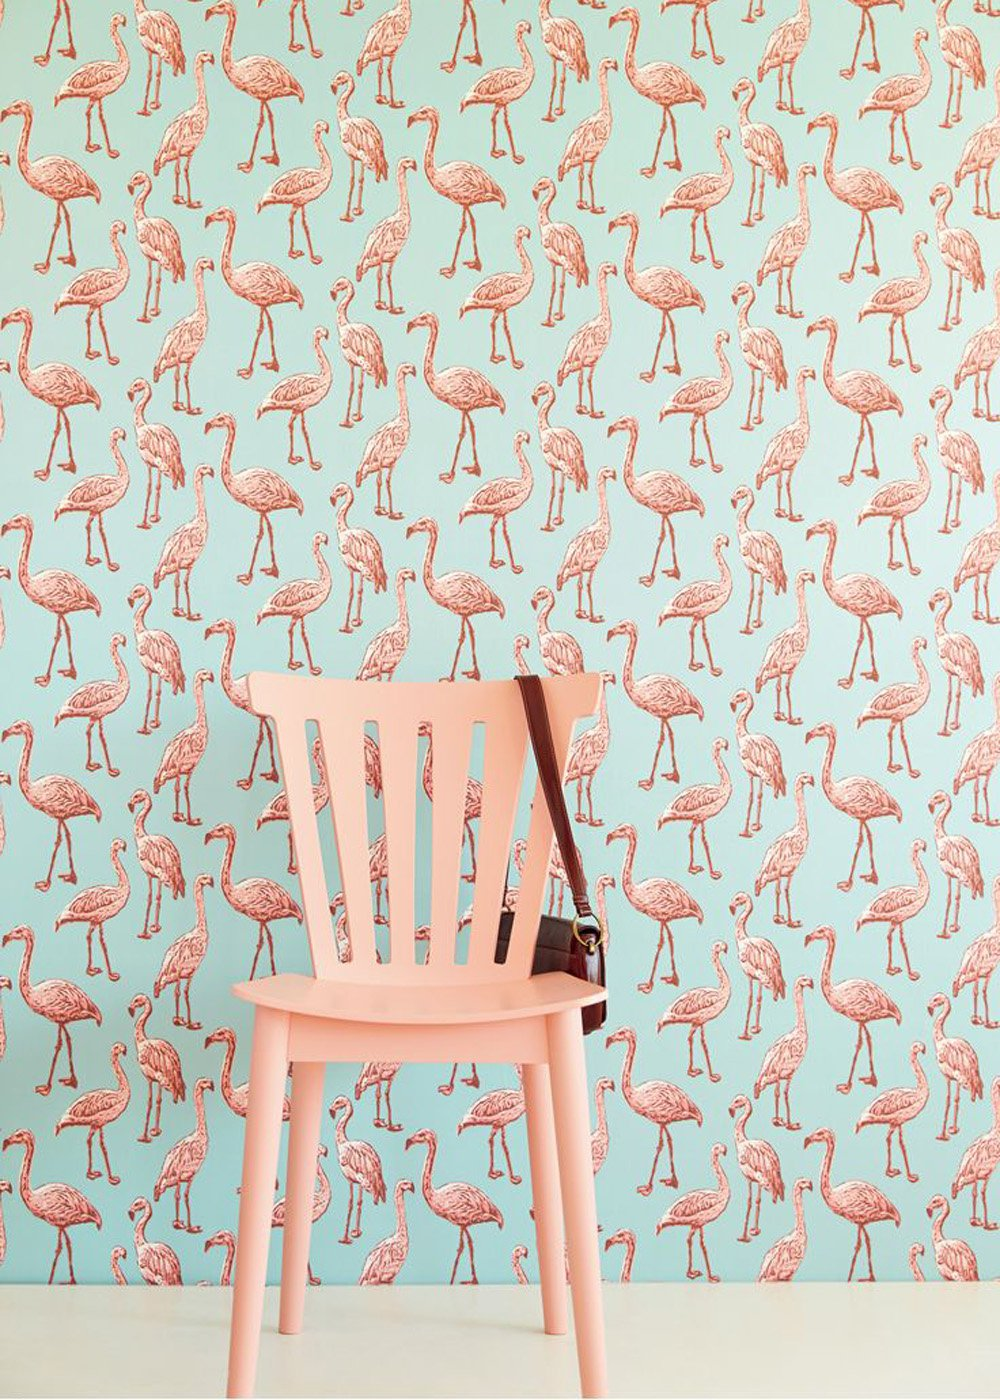 Top 10 Interieur Blogs L'imprimé Flamingo, Chic Ou Kitsch ? - Marie Claire